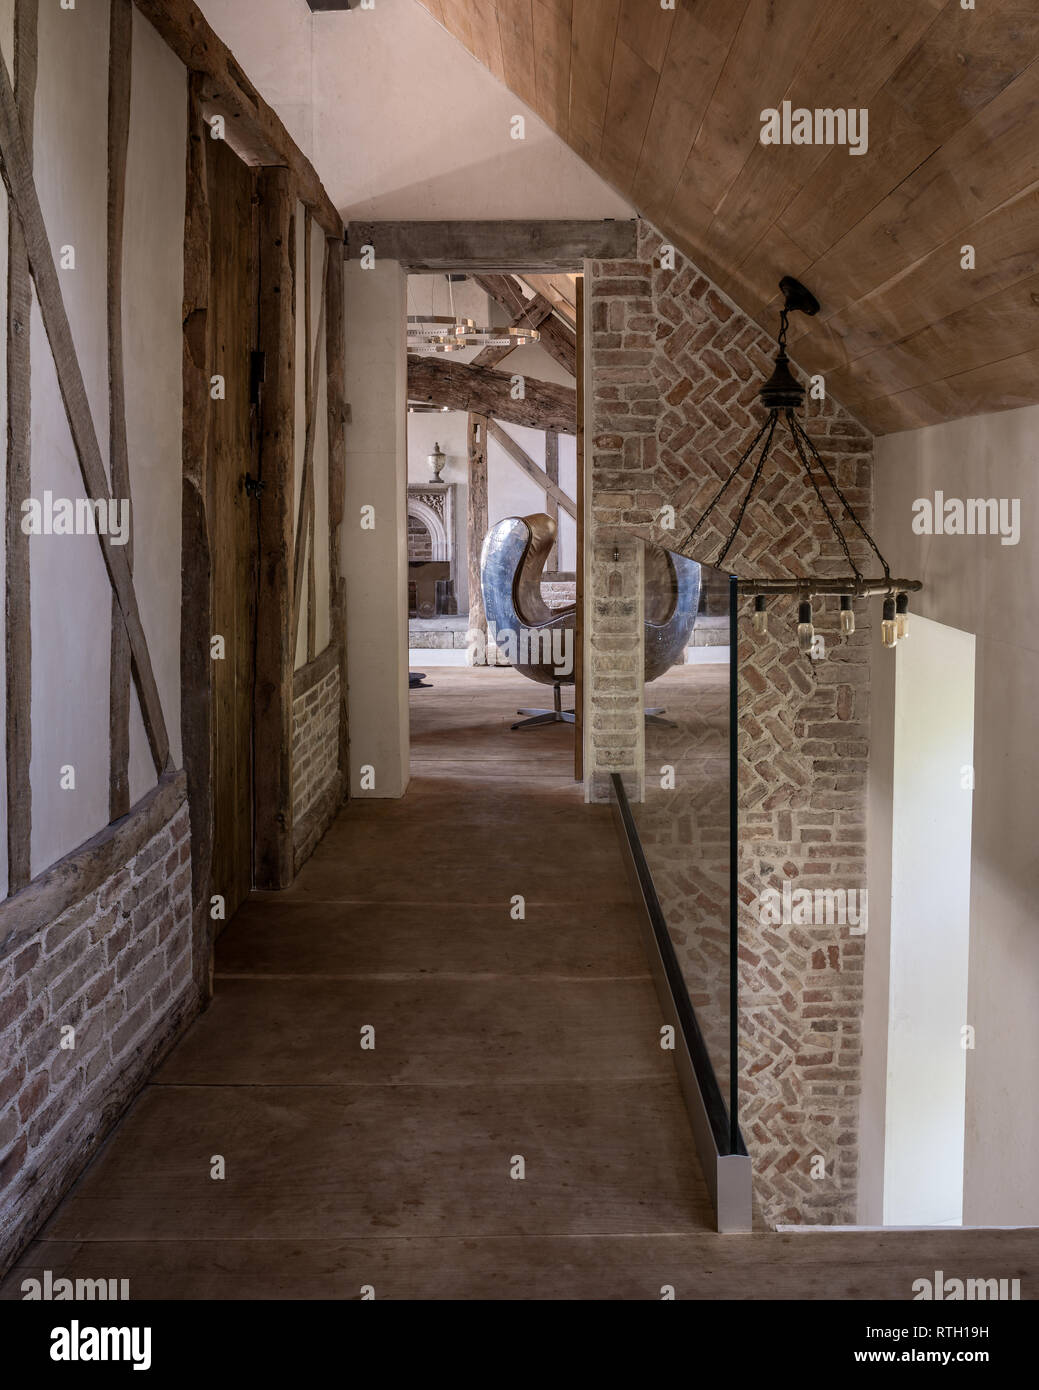 Medieval brickwork  and oak beams  with glass balustrade - Stock Image